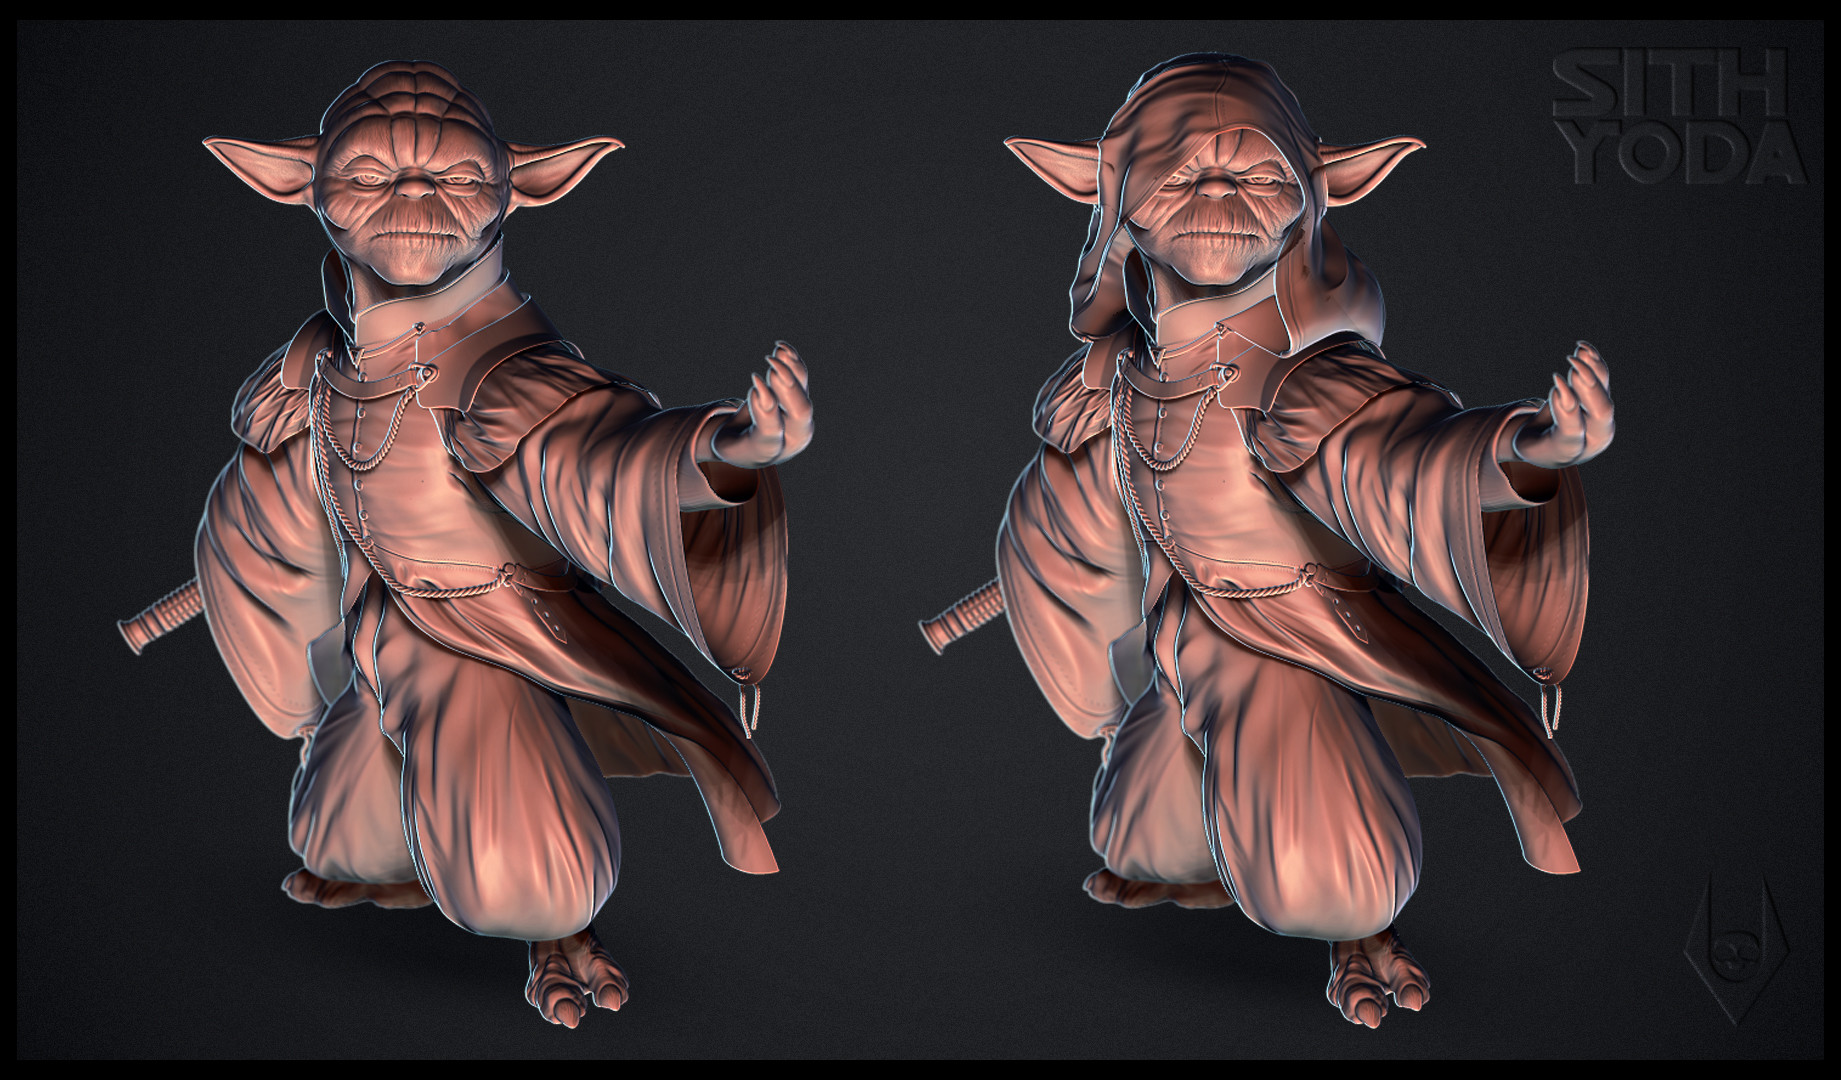 Vinicius favero yoda progress